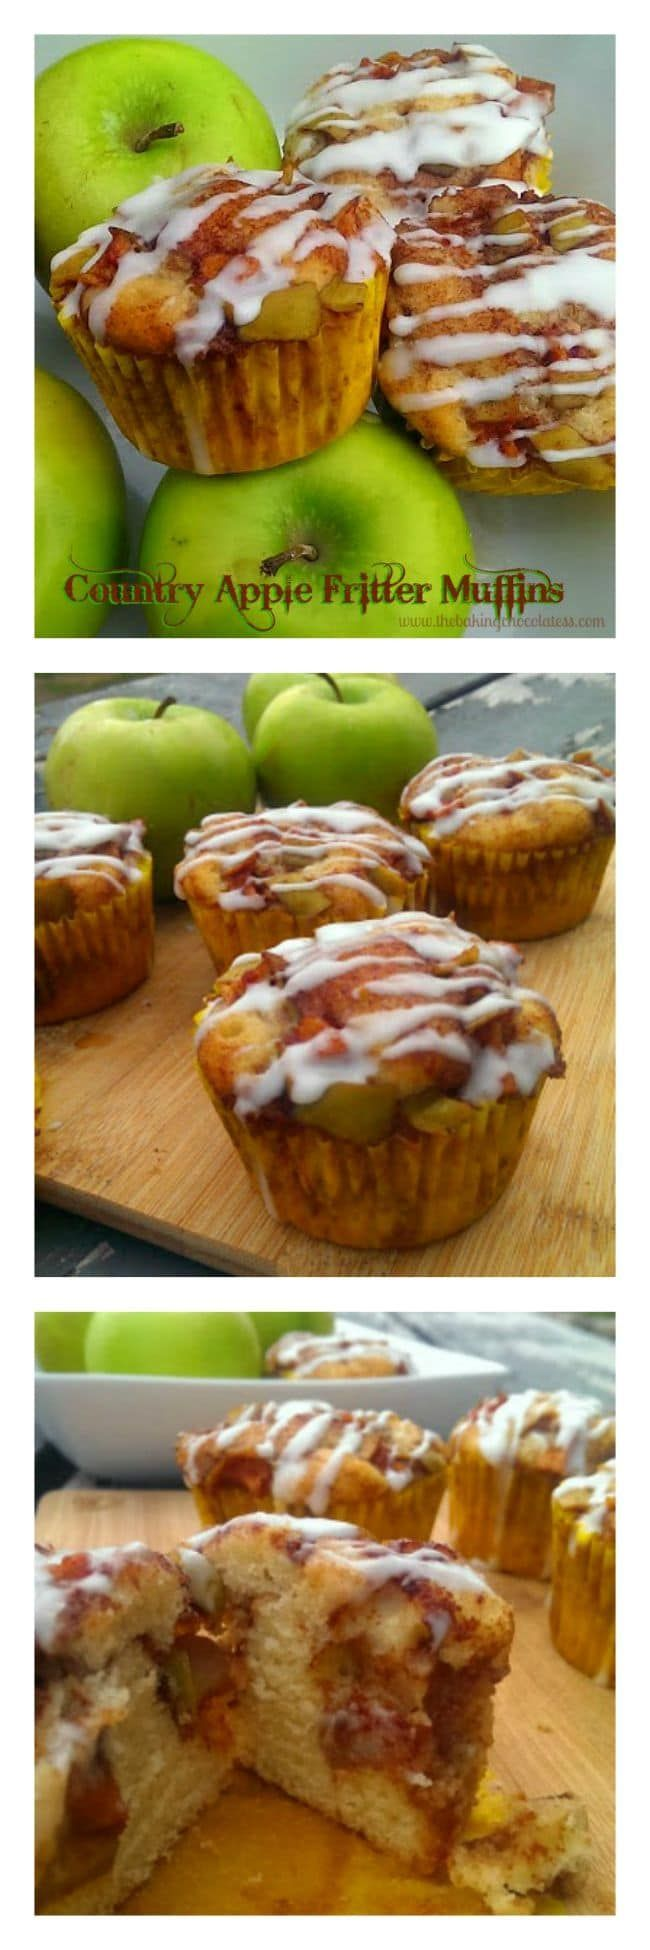 Country Apple Fritter Muffins via @https://www.pinterest.com/BaknChocolaTess/